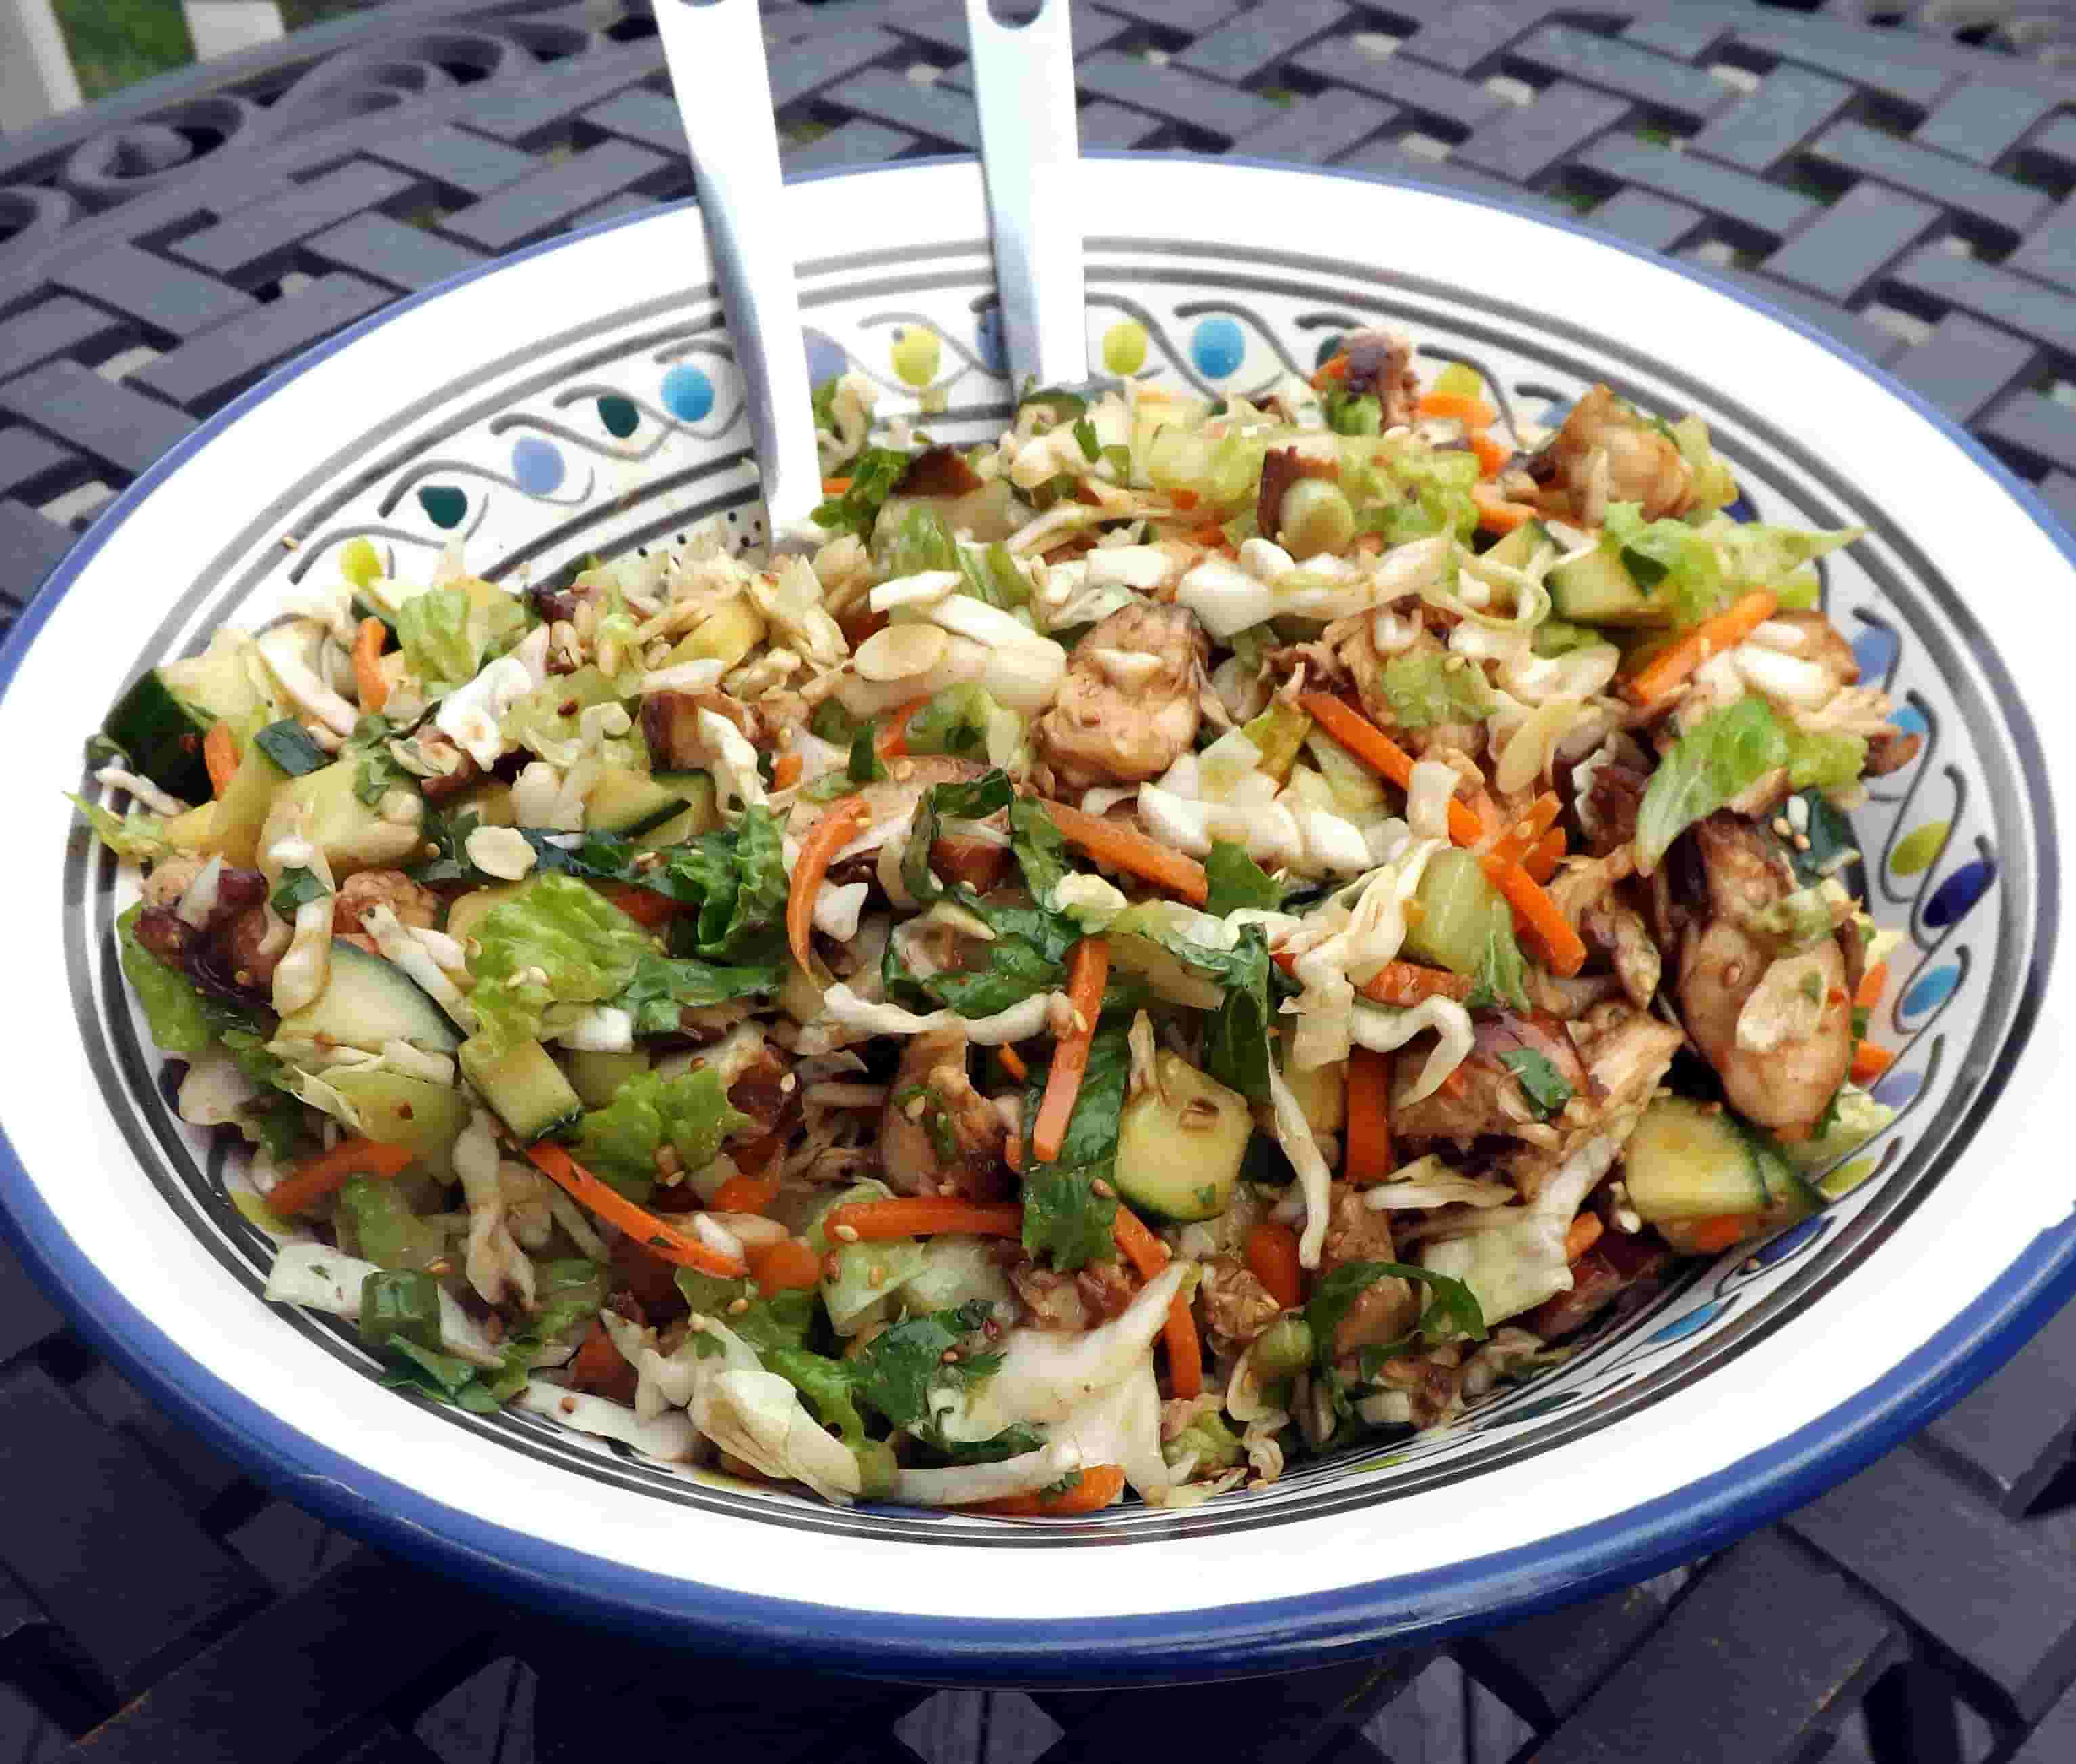 asian pulled chicken salad is one of the Healthy fast food recipes